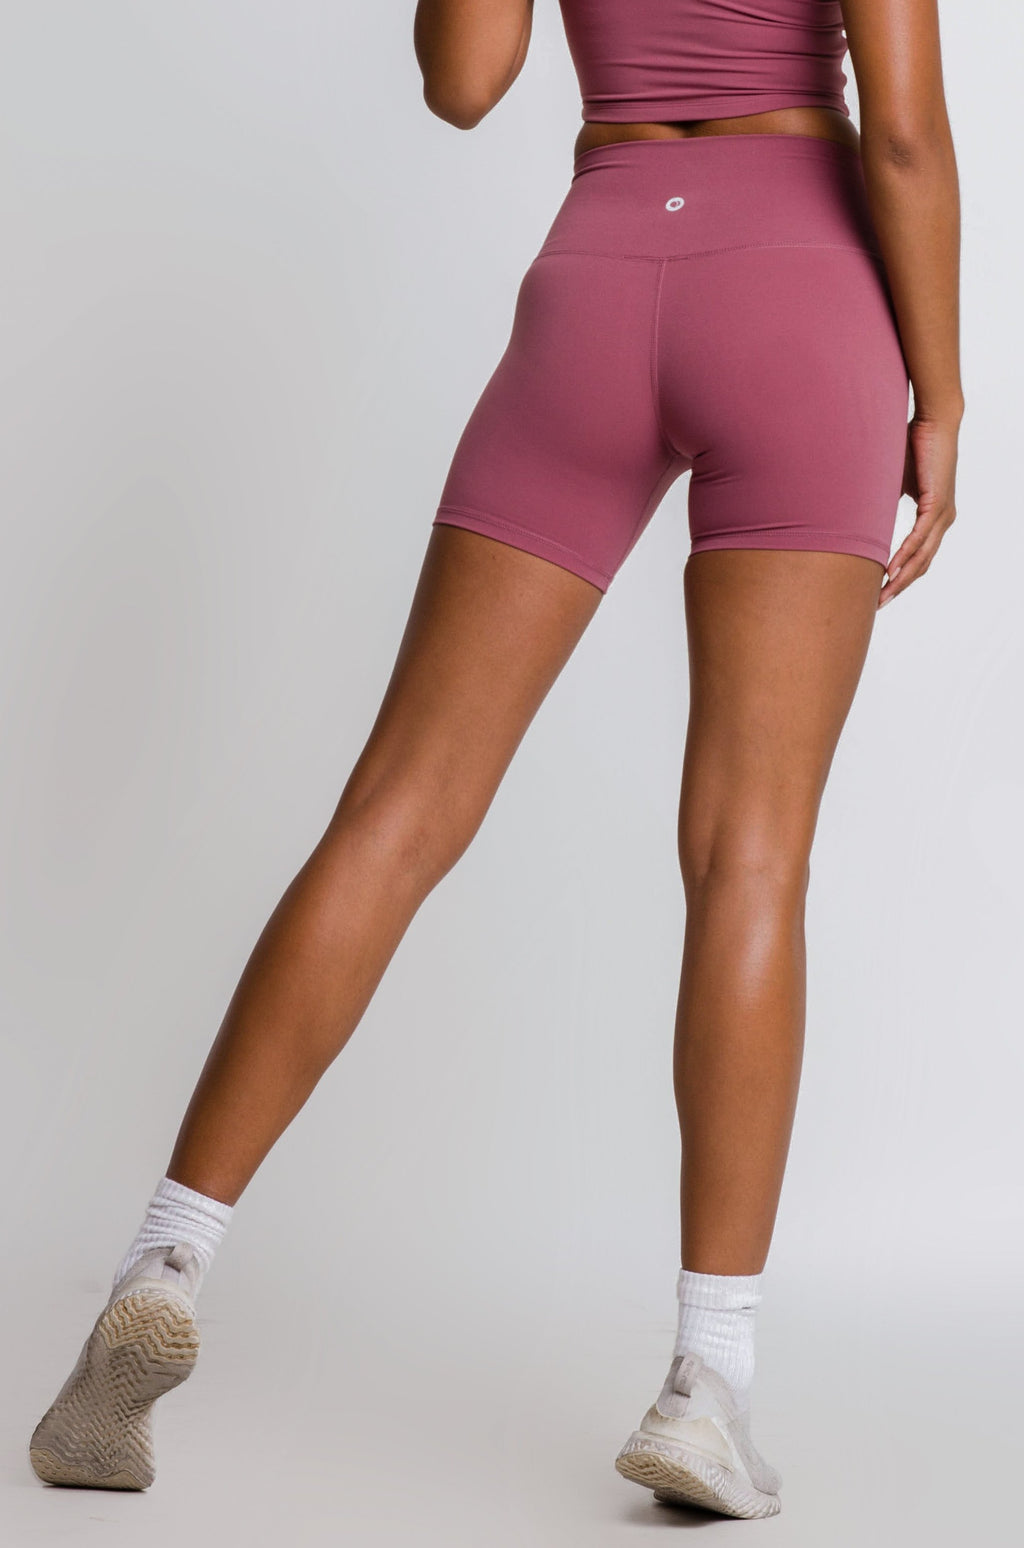 ESSENTIAL SHORTS - DUSTY ROSE